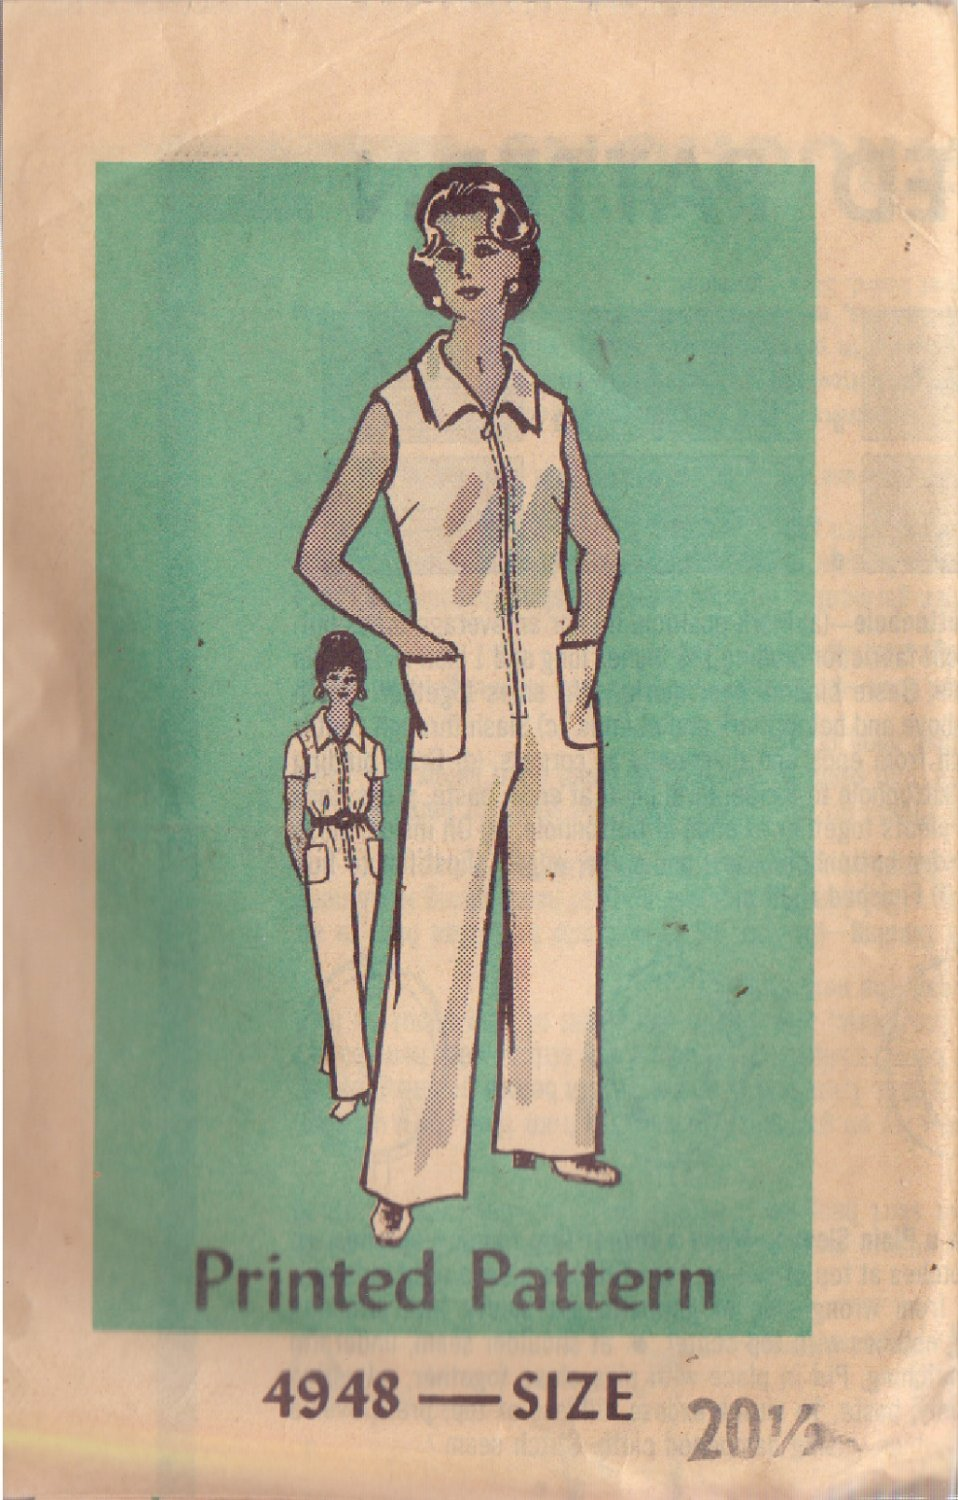 VINTAGE PRINTED PATTERN 4948 MISSES' JUMPSUIT IN 2 VARIATIONS SIZE 20 1/2